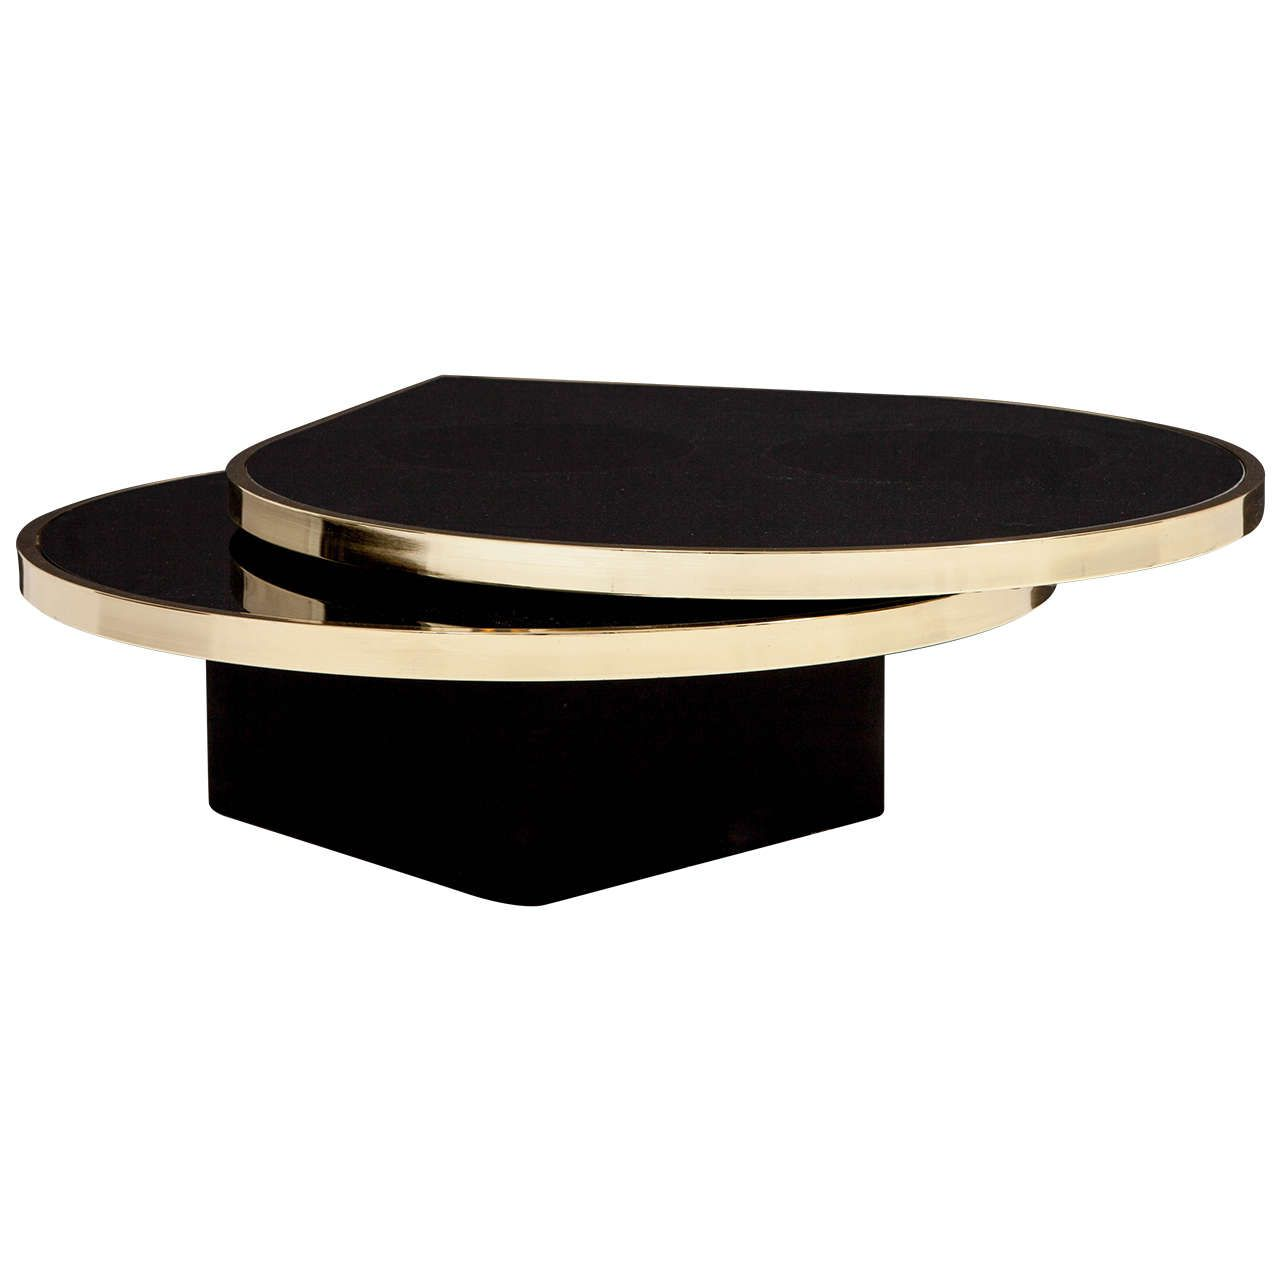 black glass and brass teardrop swivel cocktail table by dia